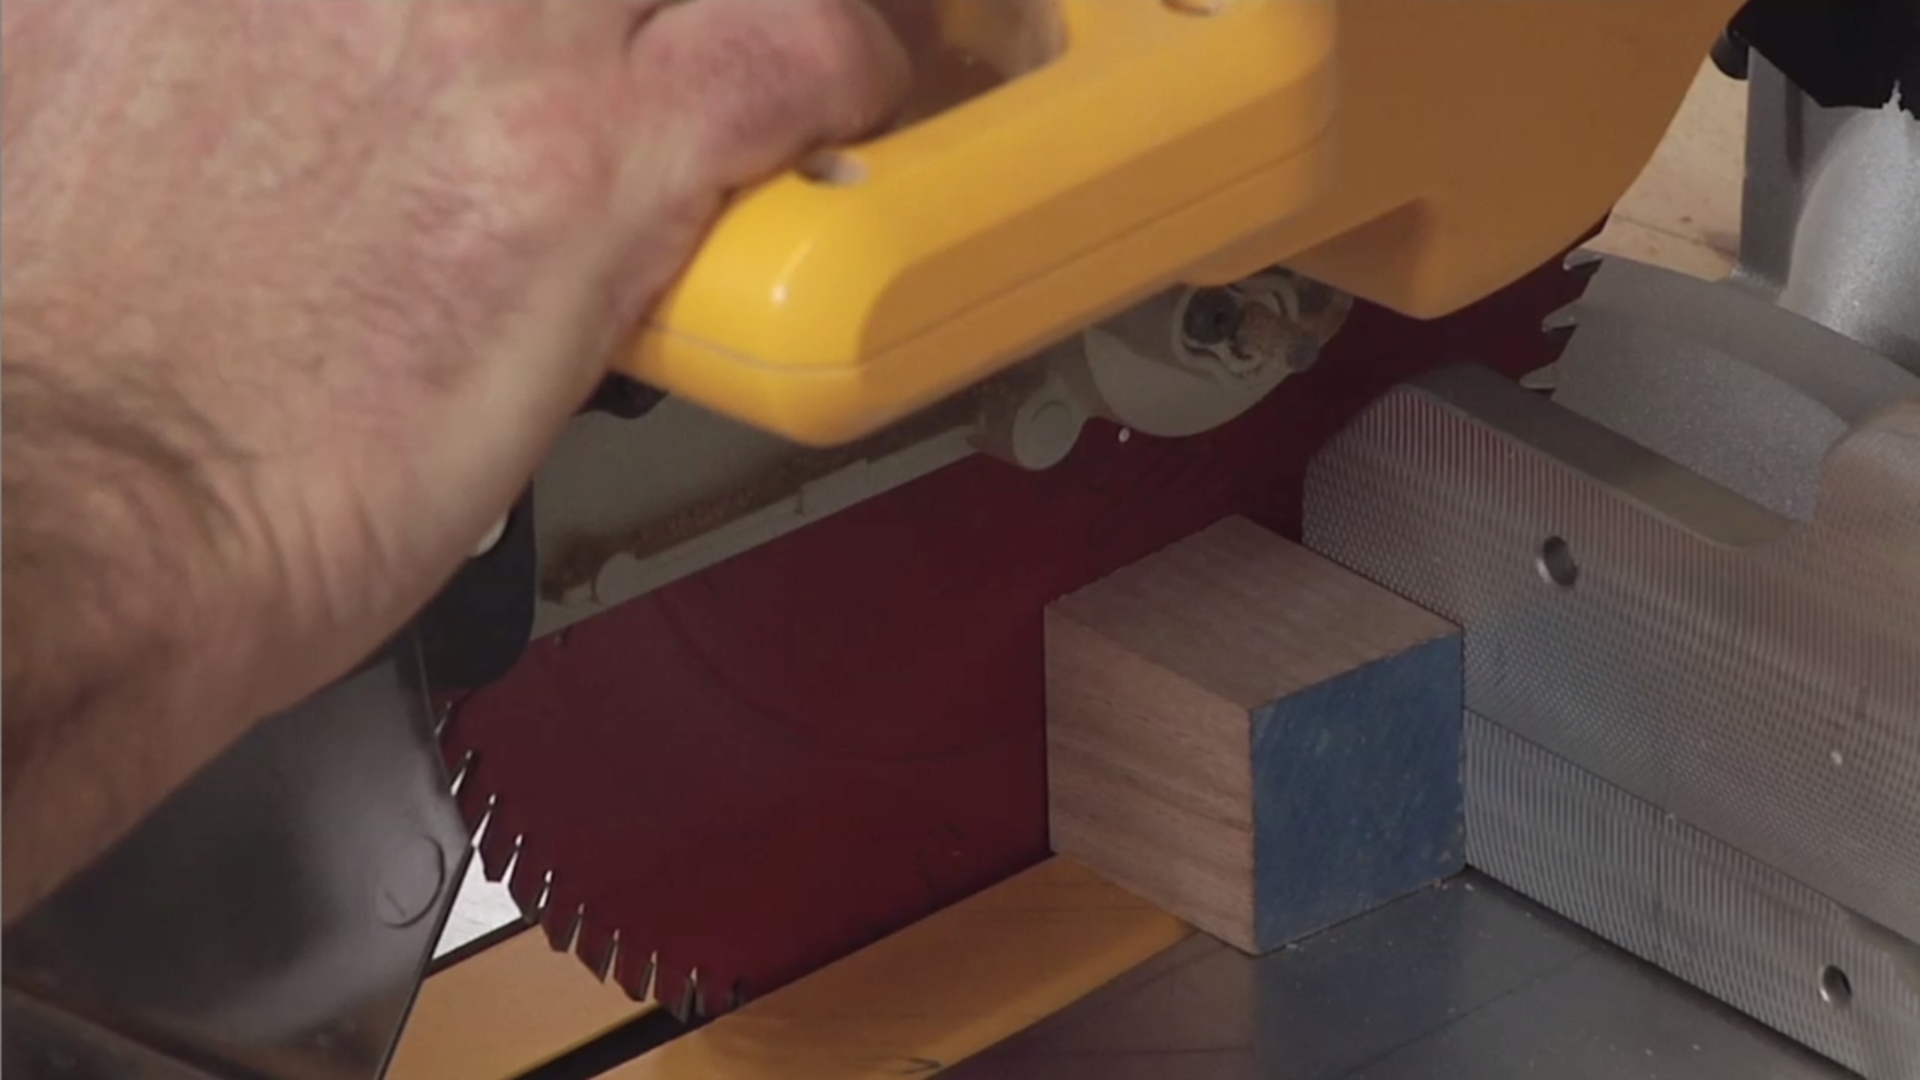 Sharpen Your Skills - Miter Saw Safety Tips